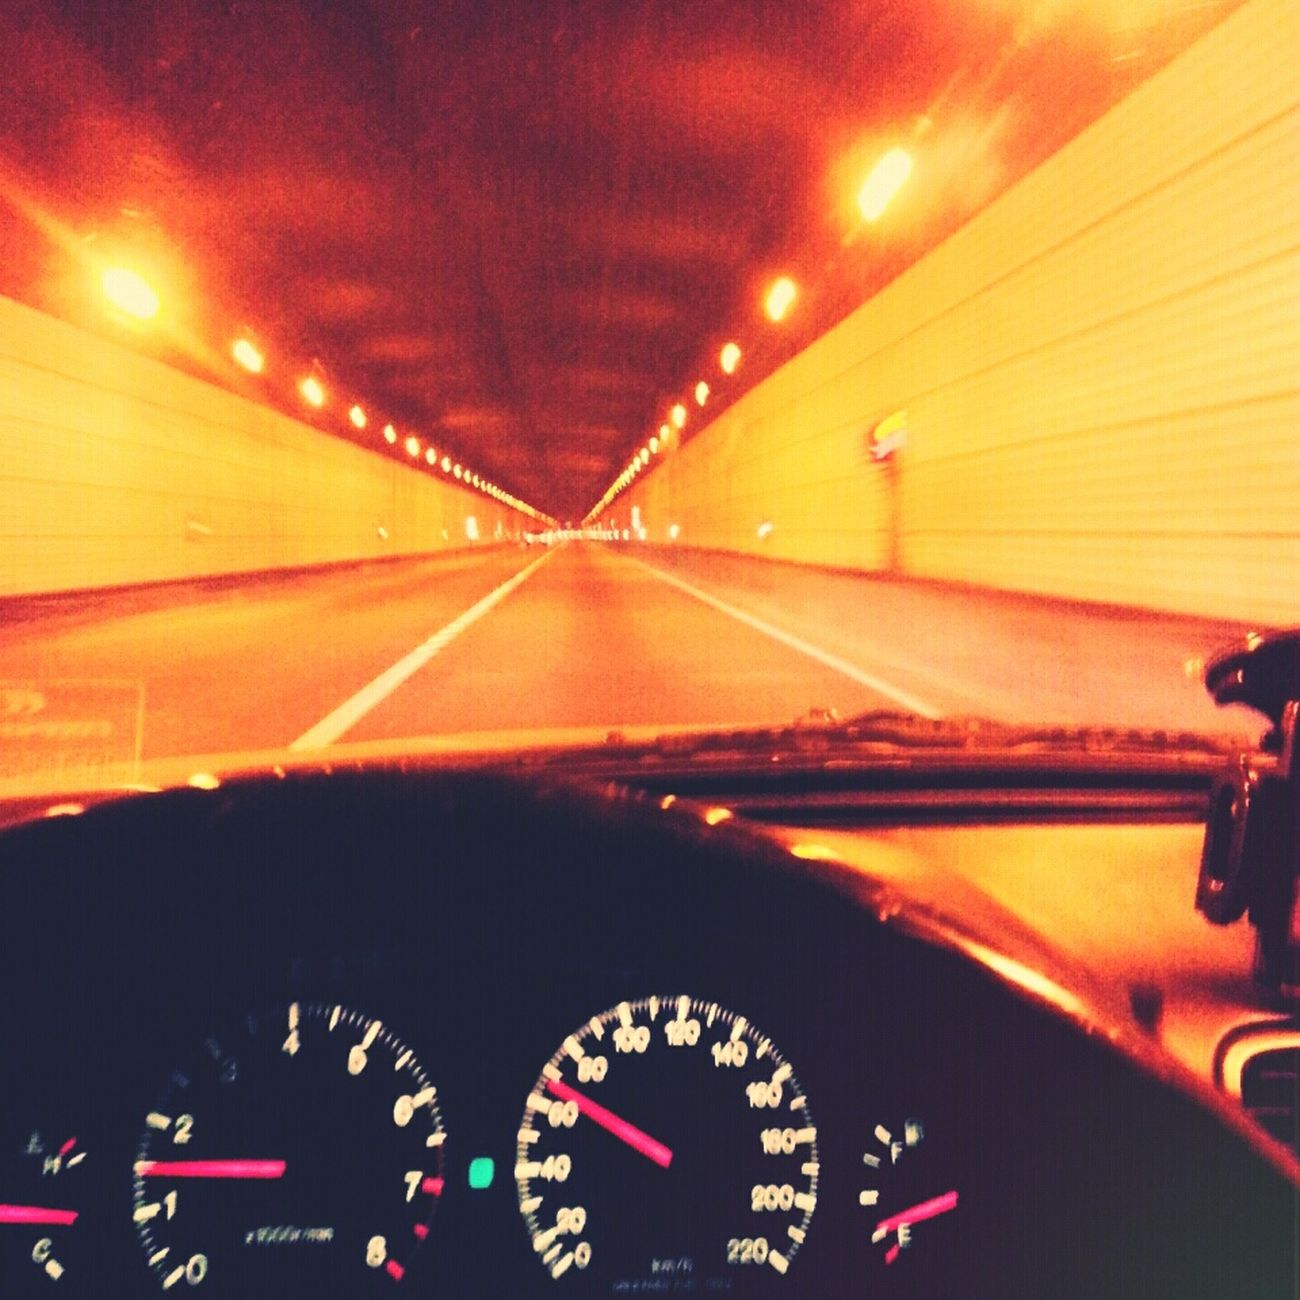 Nightdriving Tunnel